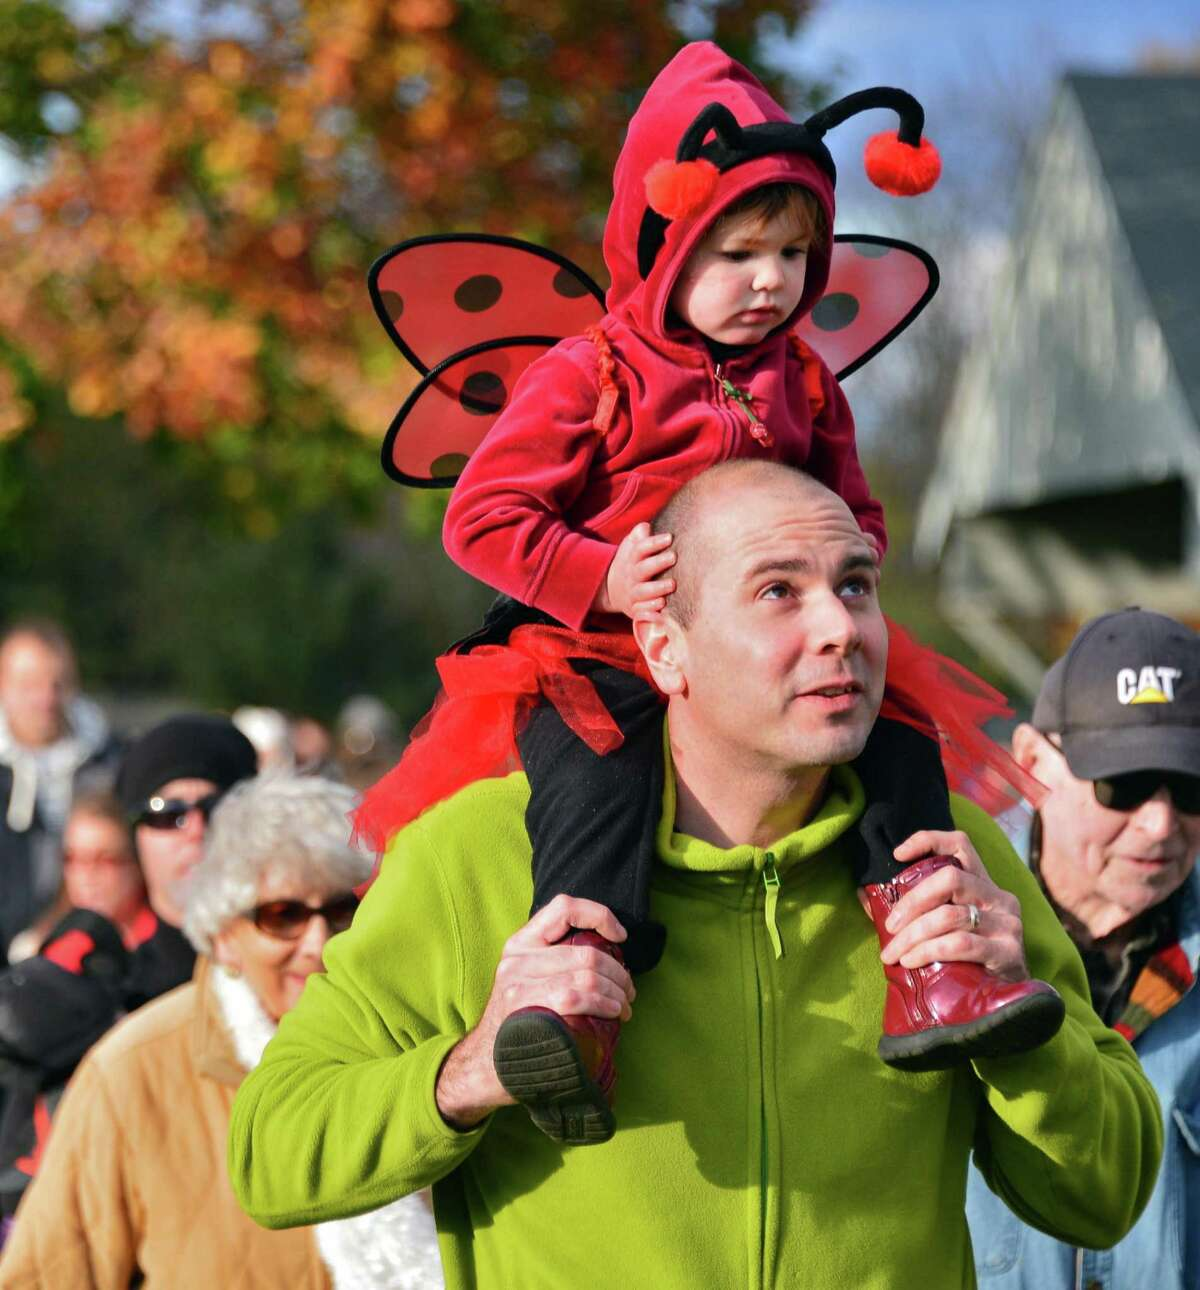 Ladybug Molly Klopfer, 1, rides atop dad's, Scott Klopfer's, shoulders in the Halloween costume parade at Clifton Common Friday, Oct. 25, 2013, in Clifton Park, N.Y. (John Carl D'Annibale / Times Union)